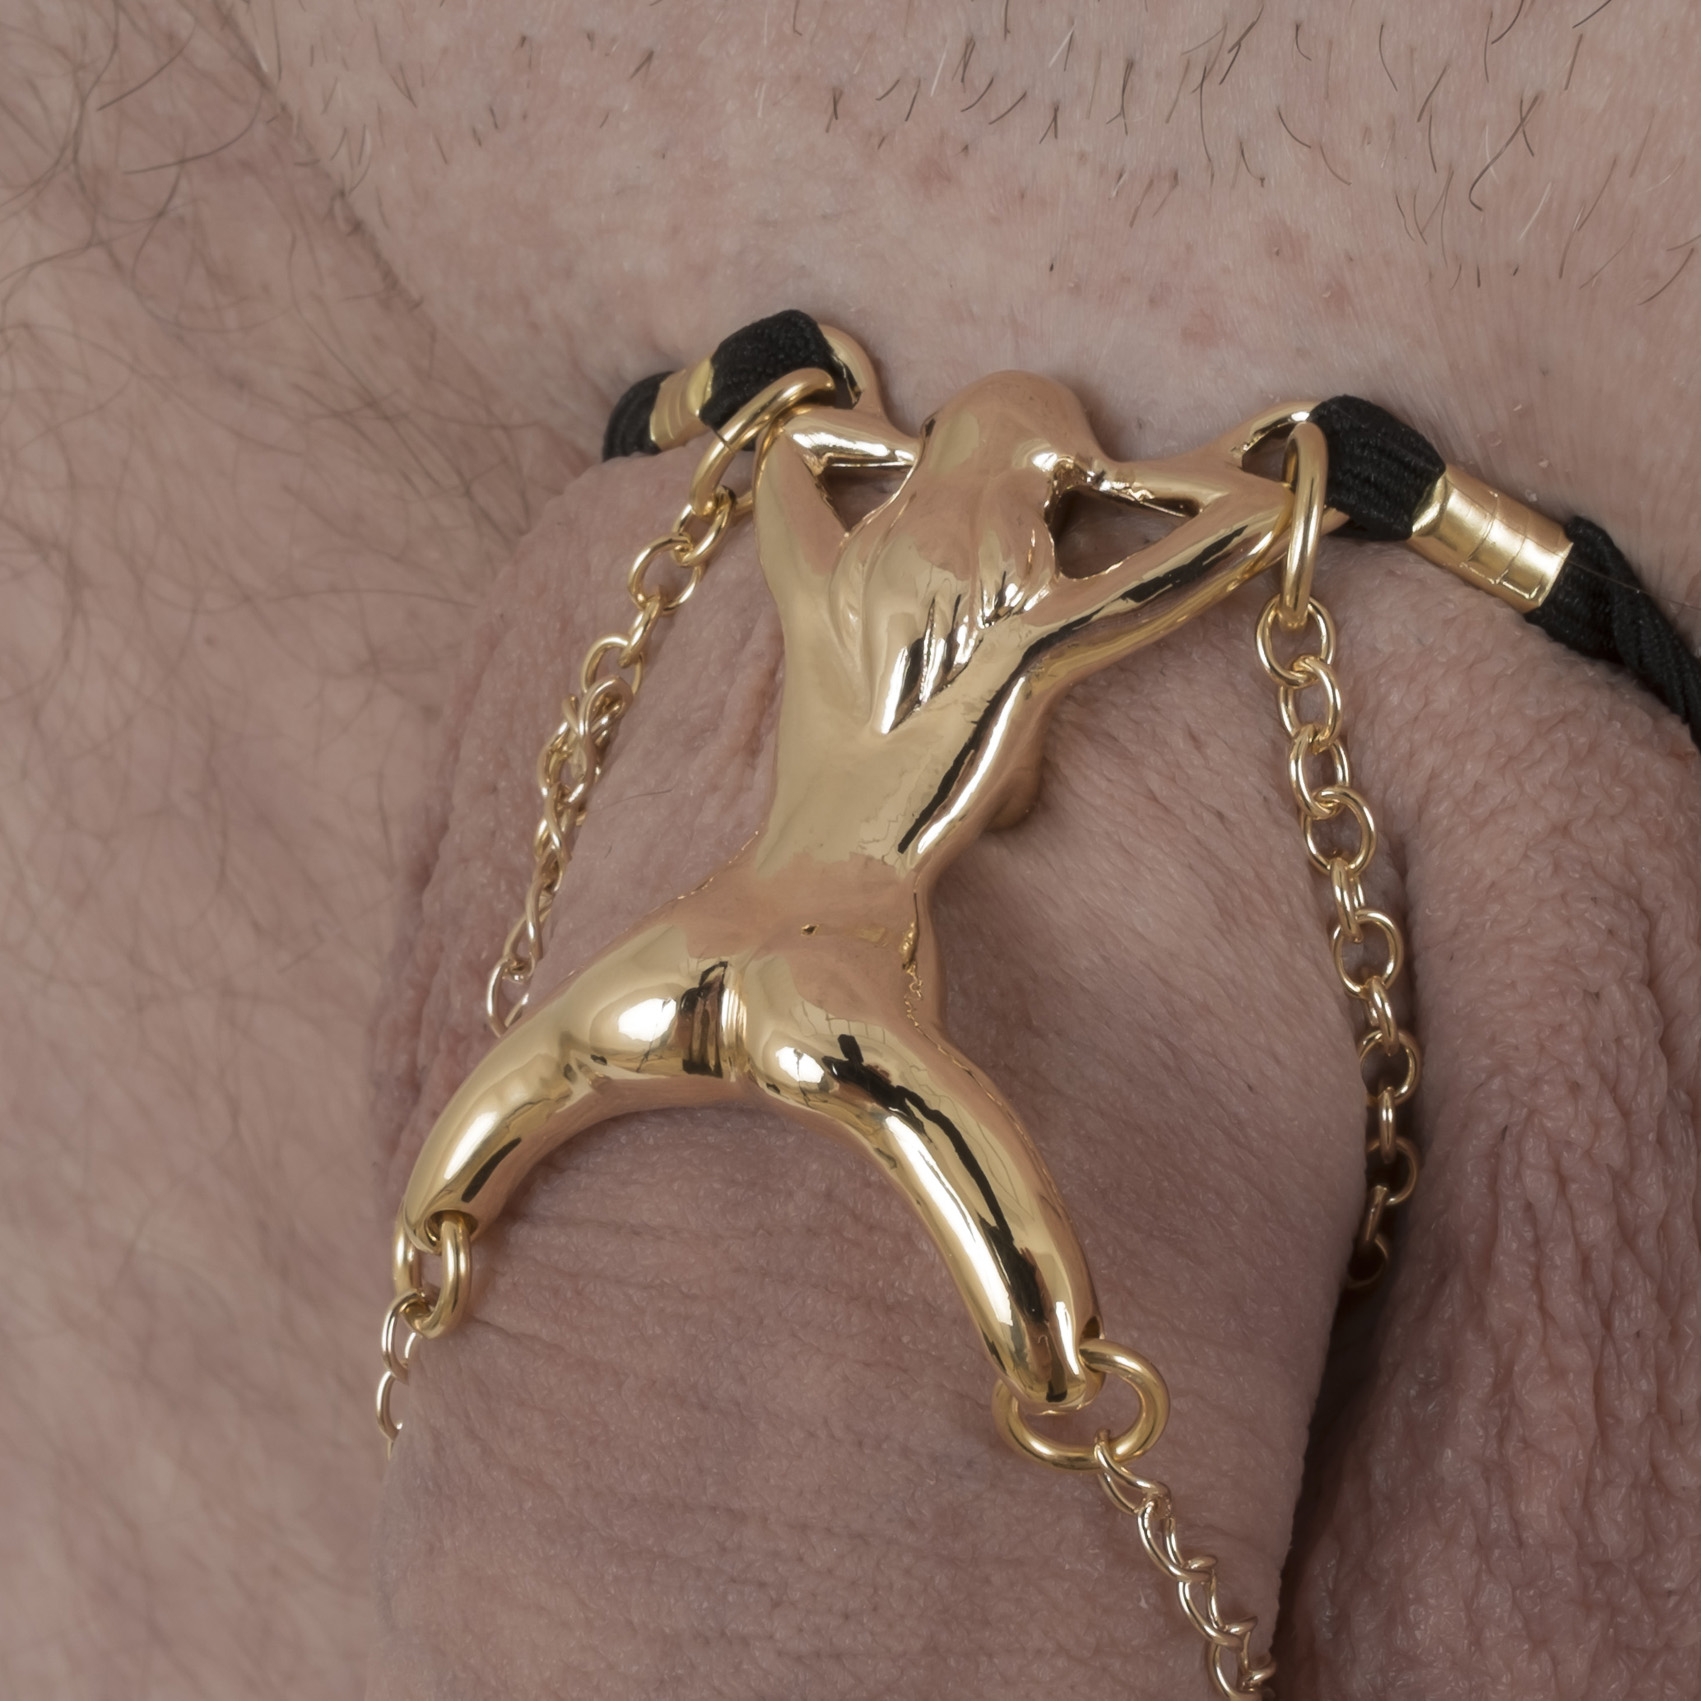 BH136 Men's Gold Woman Shaft Penis Chain